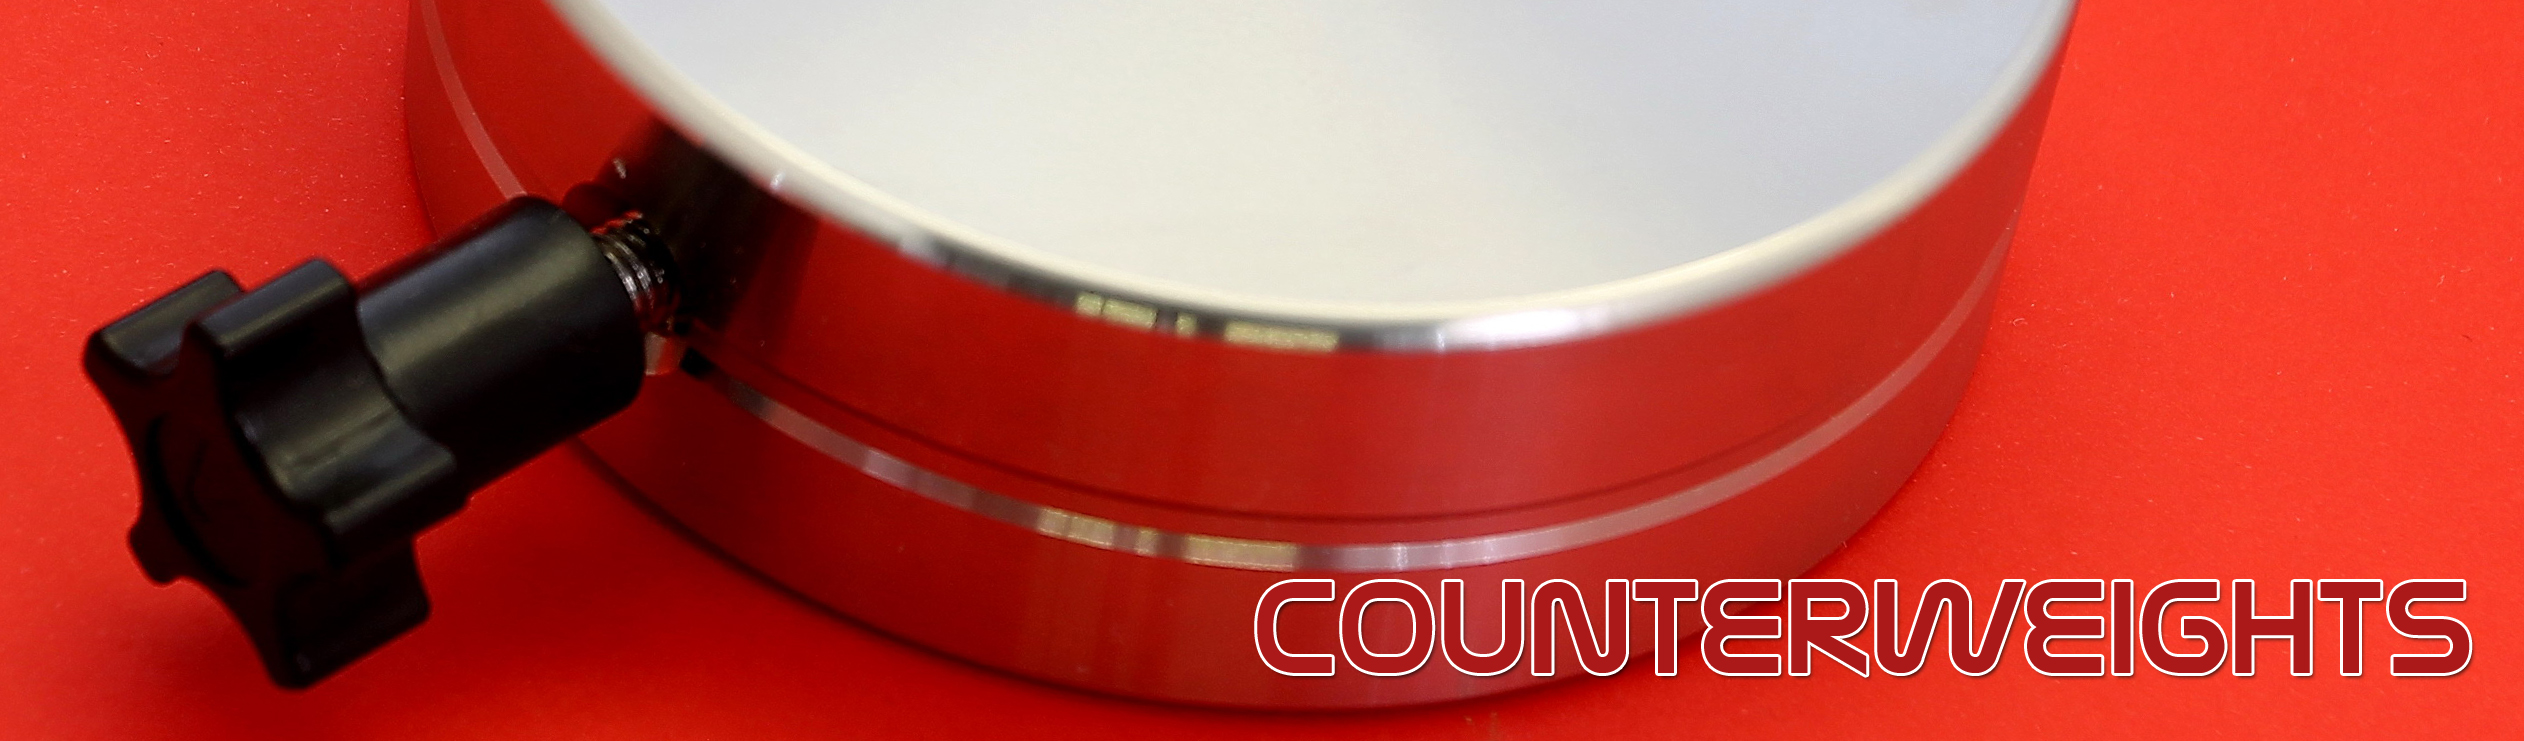 counterweights banner home page